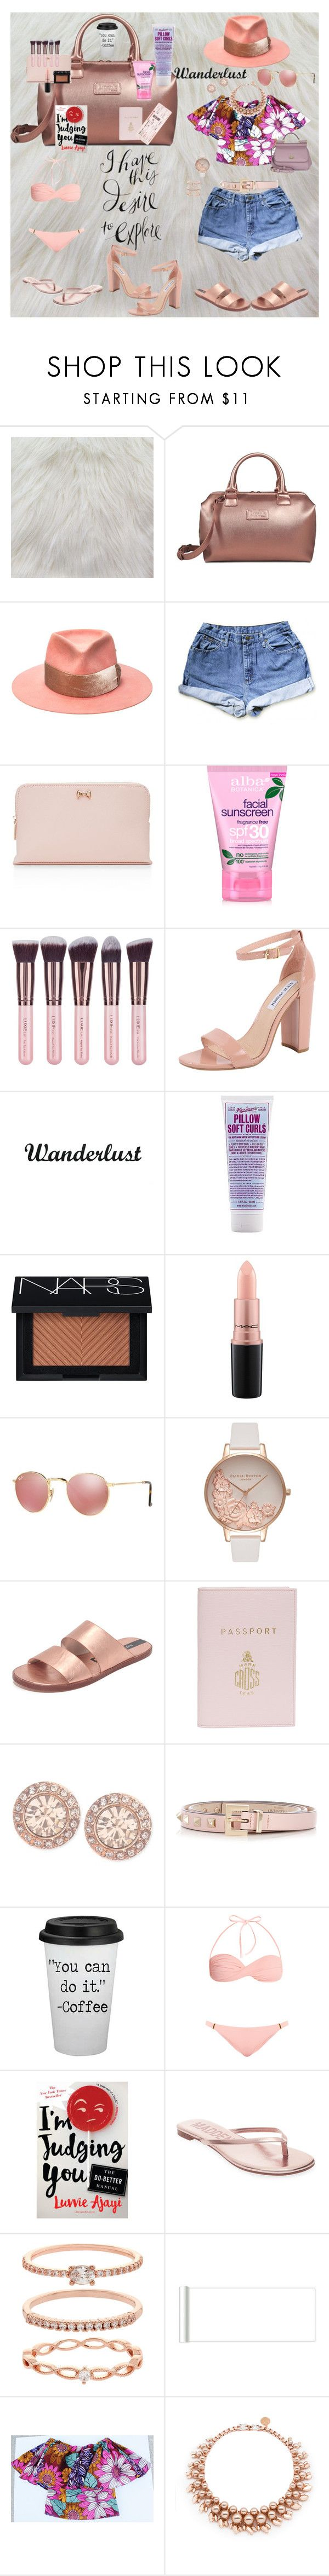 """Ankarage Weekend Getaway"" by ankarage on Polyvore featuring Lipault, Nick Fouquet, Ted Baker, Alba Botanica, Luxie, Steve Madden, Miss Jessie's, NARS Cosmetics, MAC Cosmetics and Ray-Ban"